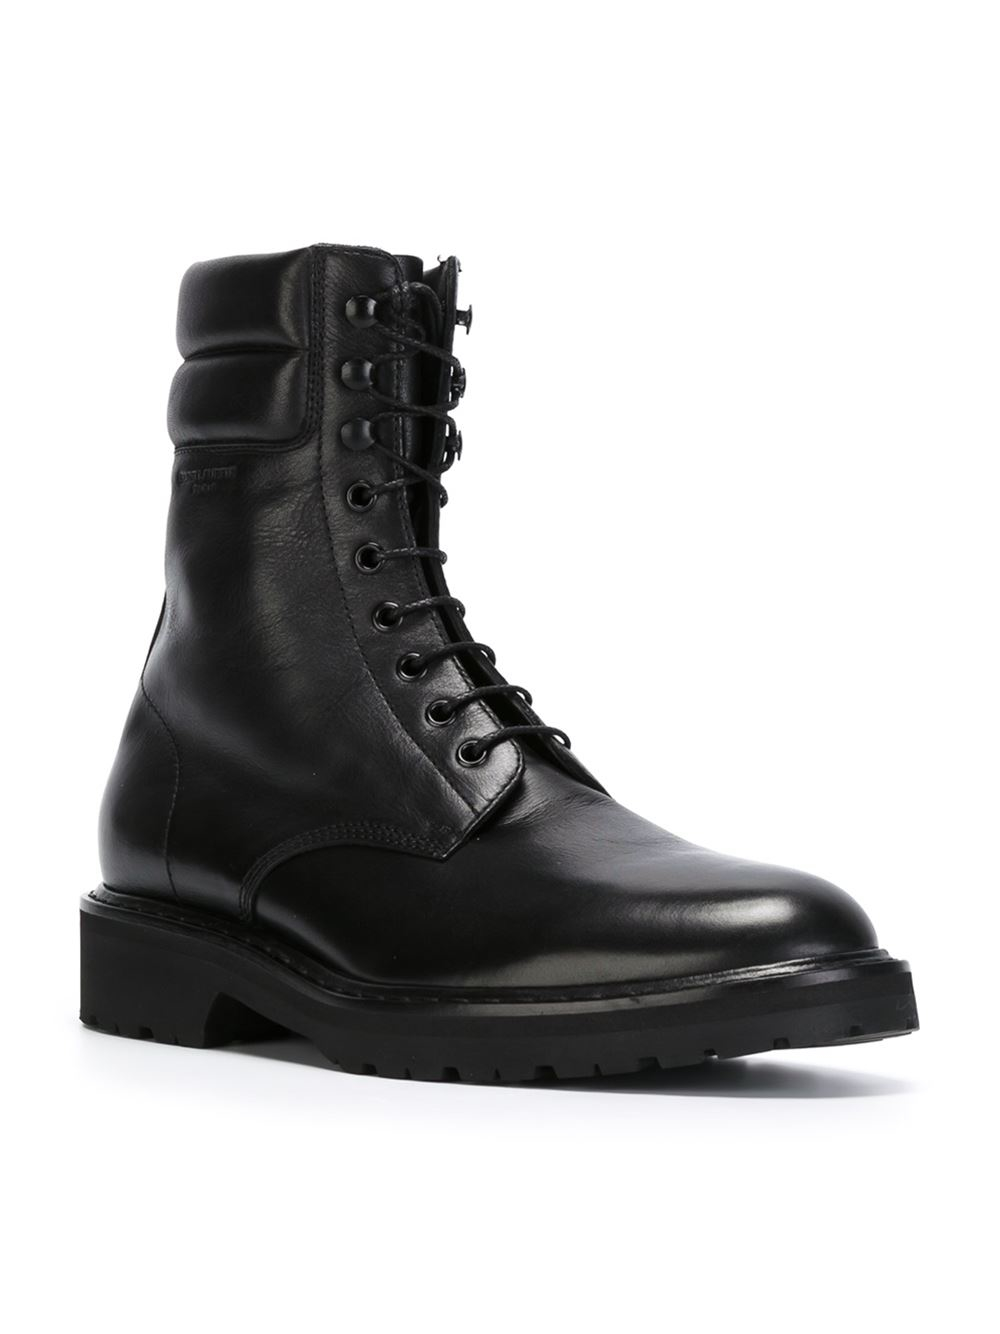 DailyShoes Women's Military Combat Boots with Pocket, you can easily Shop Best Sellers· Deals of the Day· Fast Shipping· Read Ratings & Reviews.